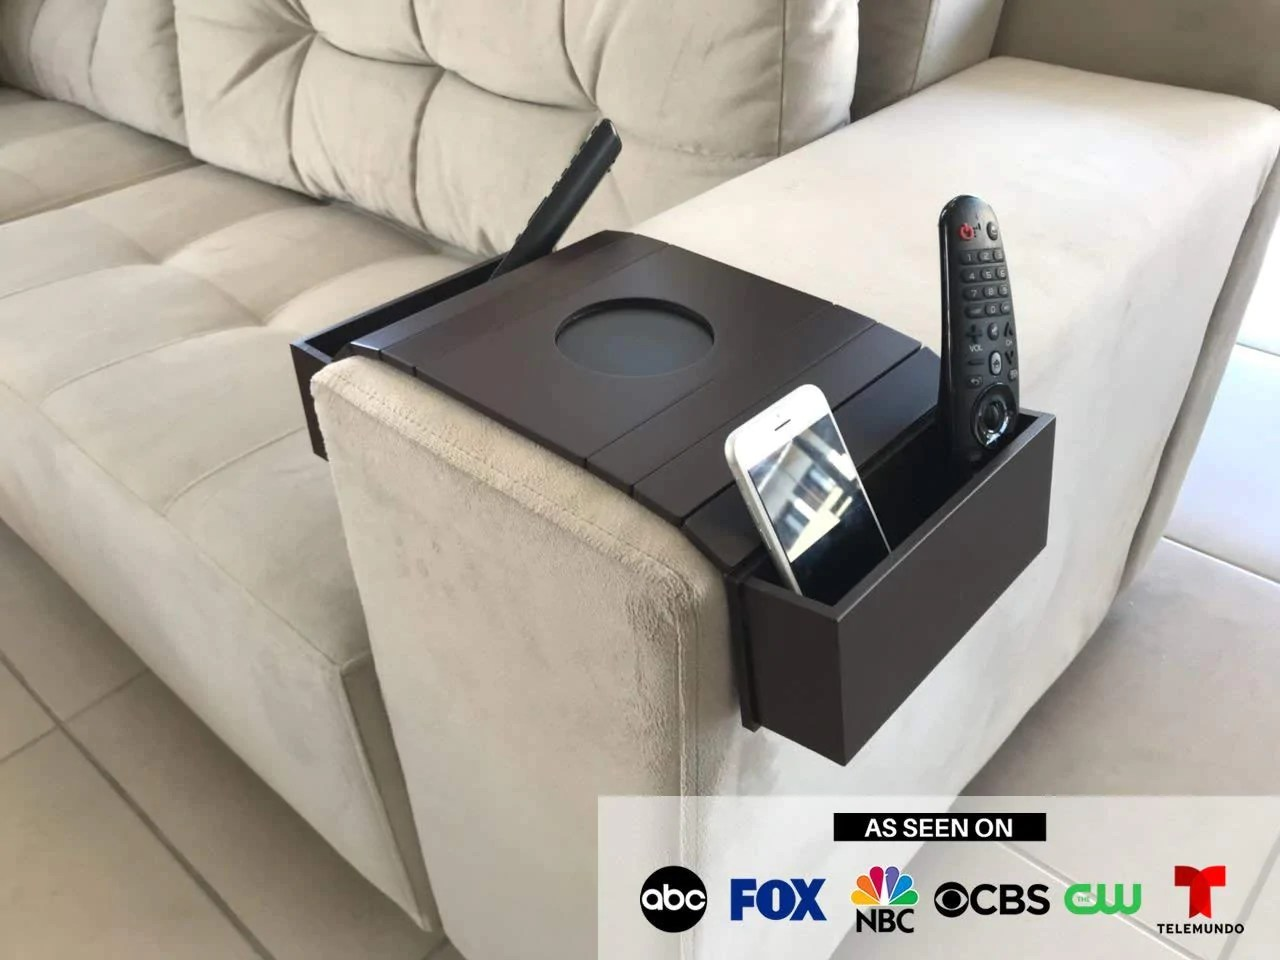 sofa arm bobs bed other home decor tray table remote control and cellphone organizer holder rest